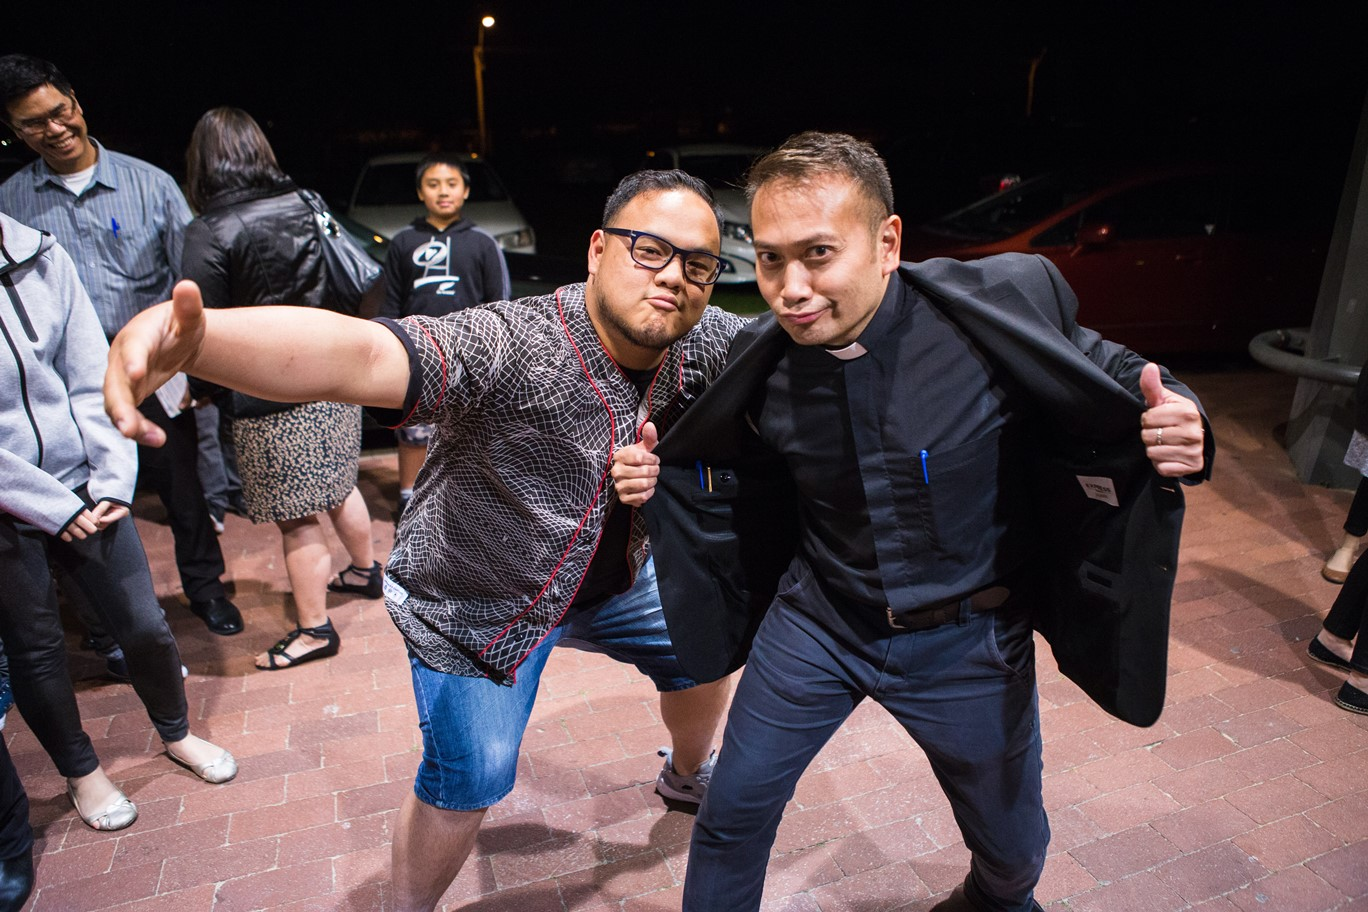 Fr. Leo and young adult take funny photos together